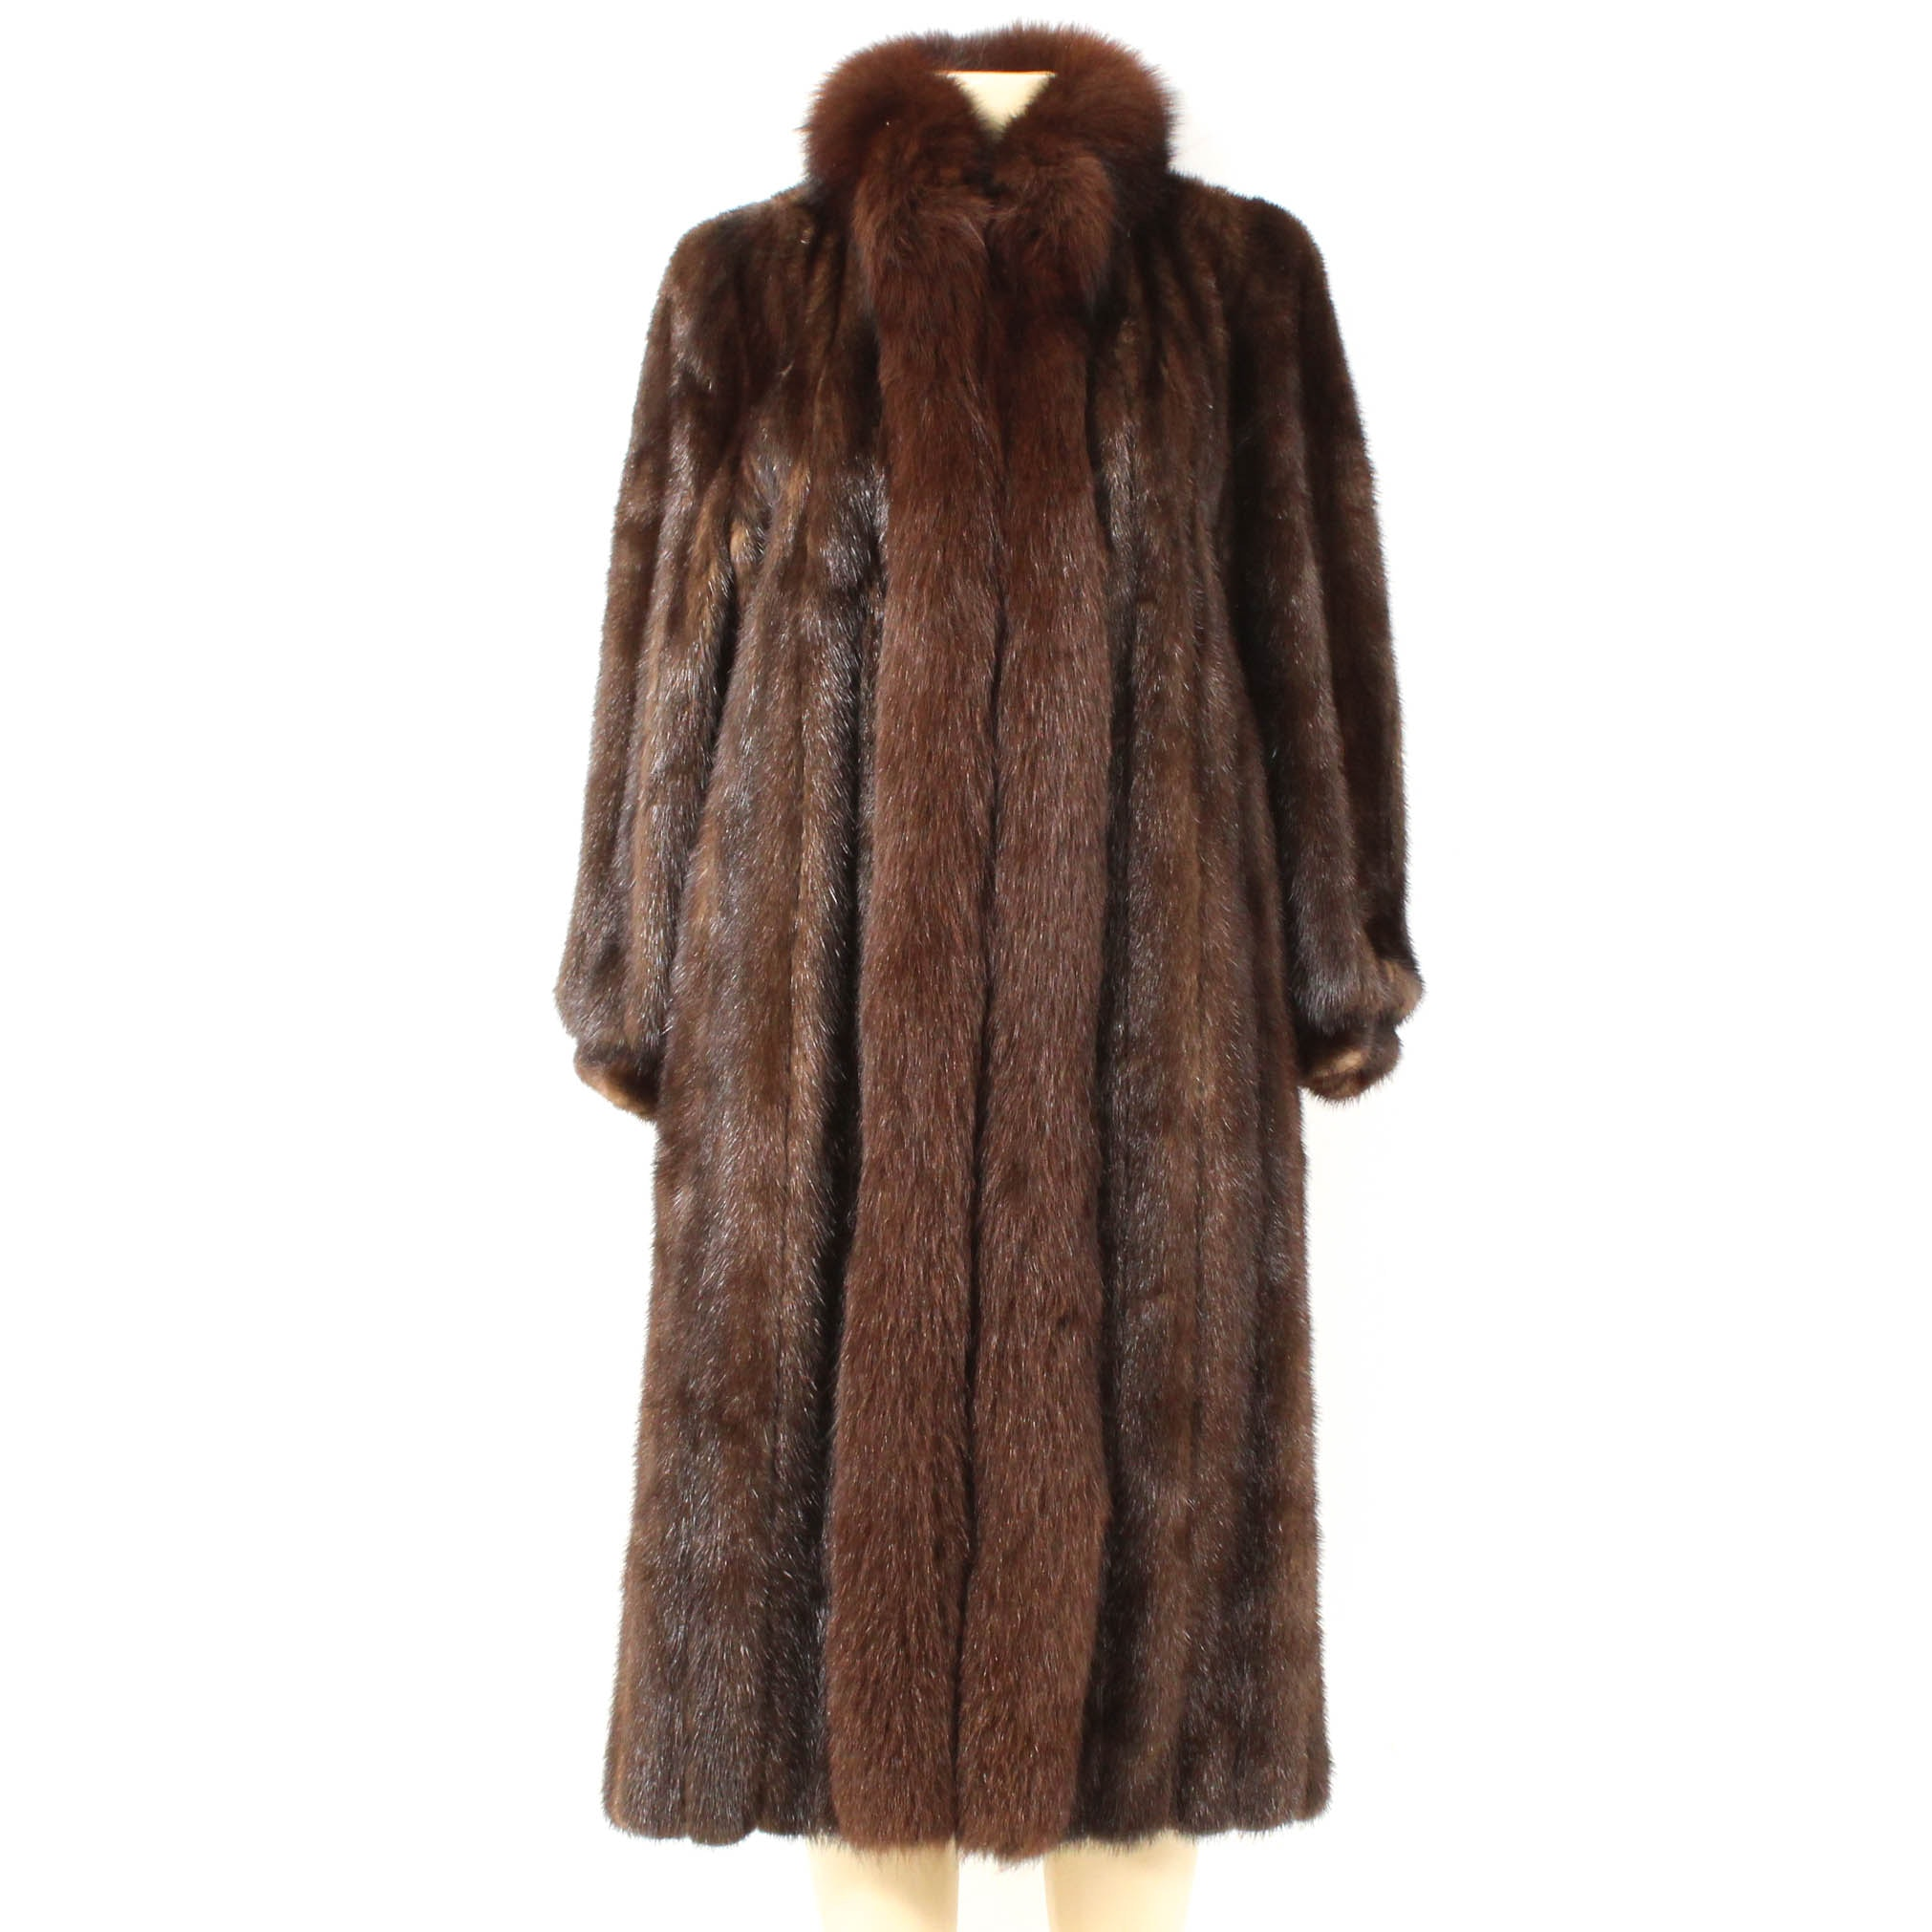 Mahogany Mink Fur Coat with Fox Fur Trim by Fredrick & Nelson